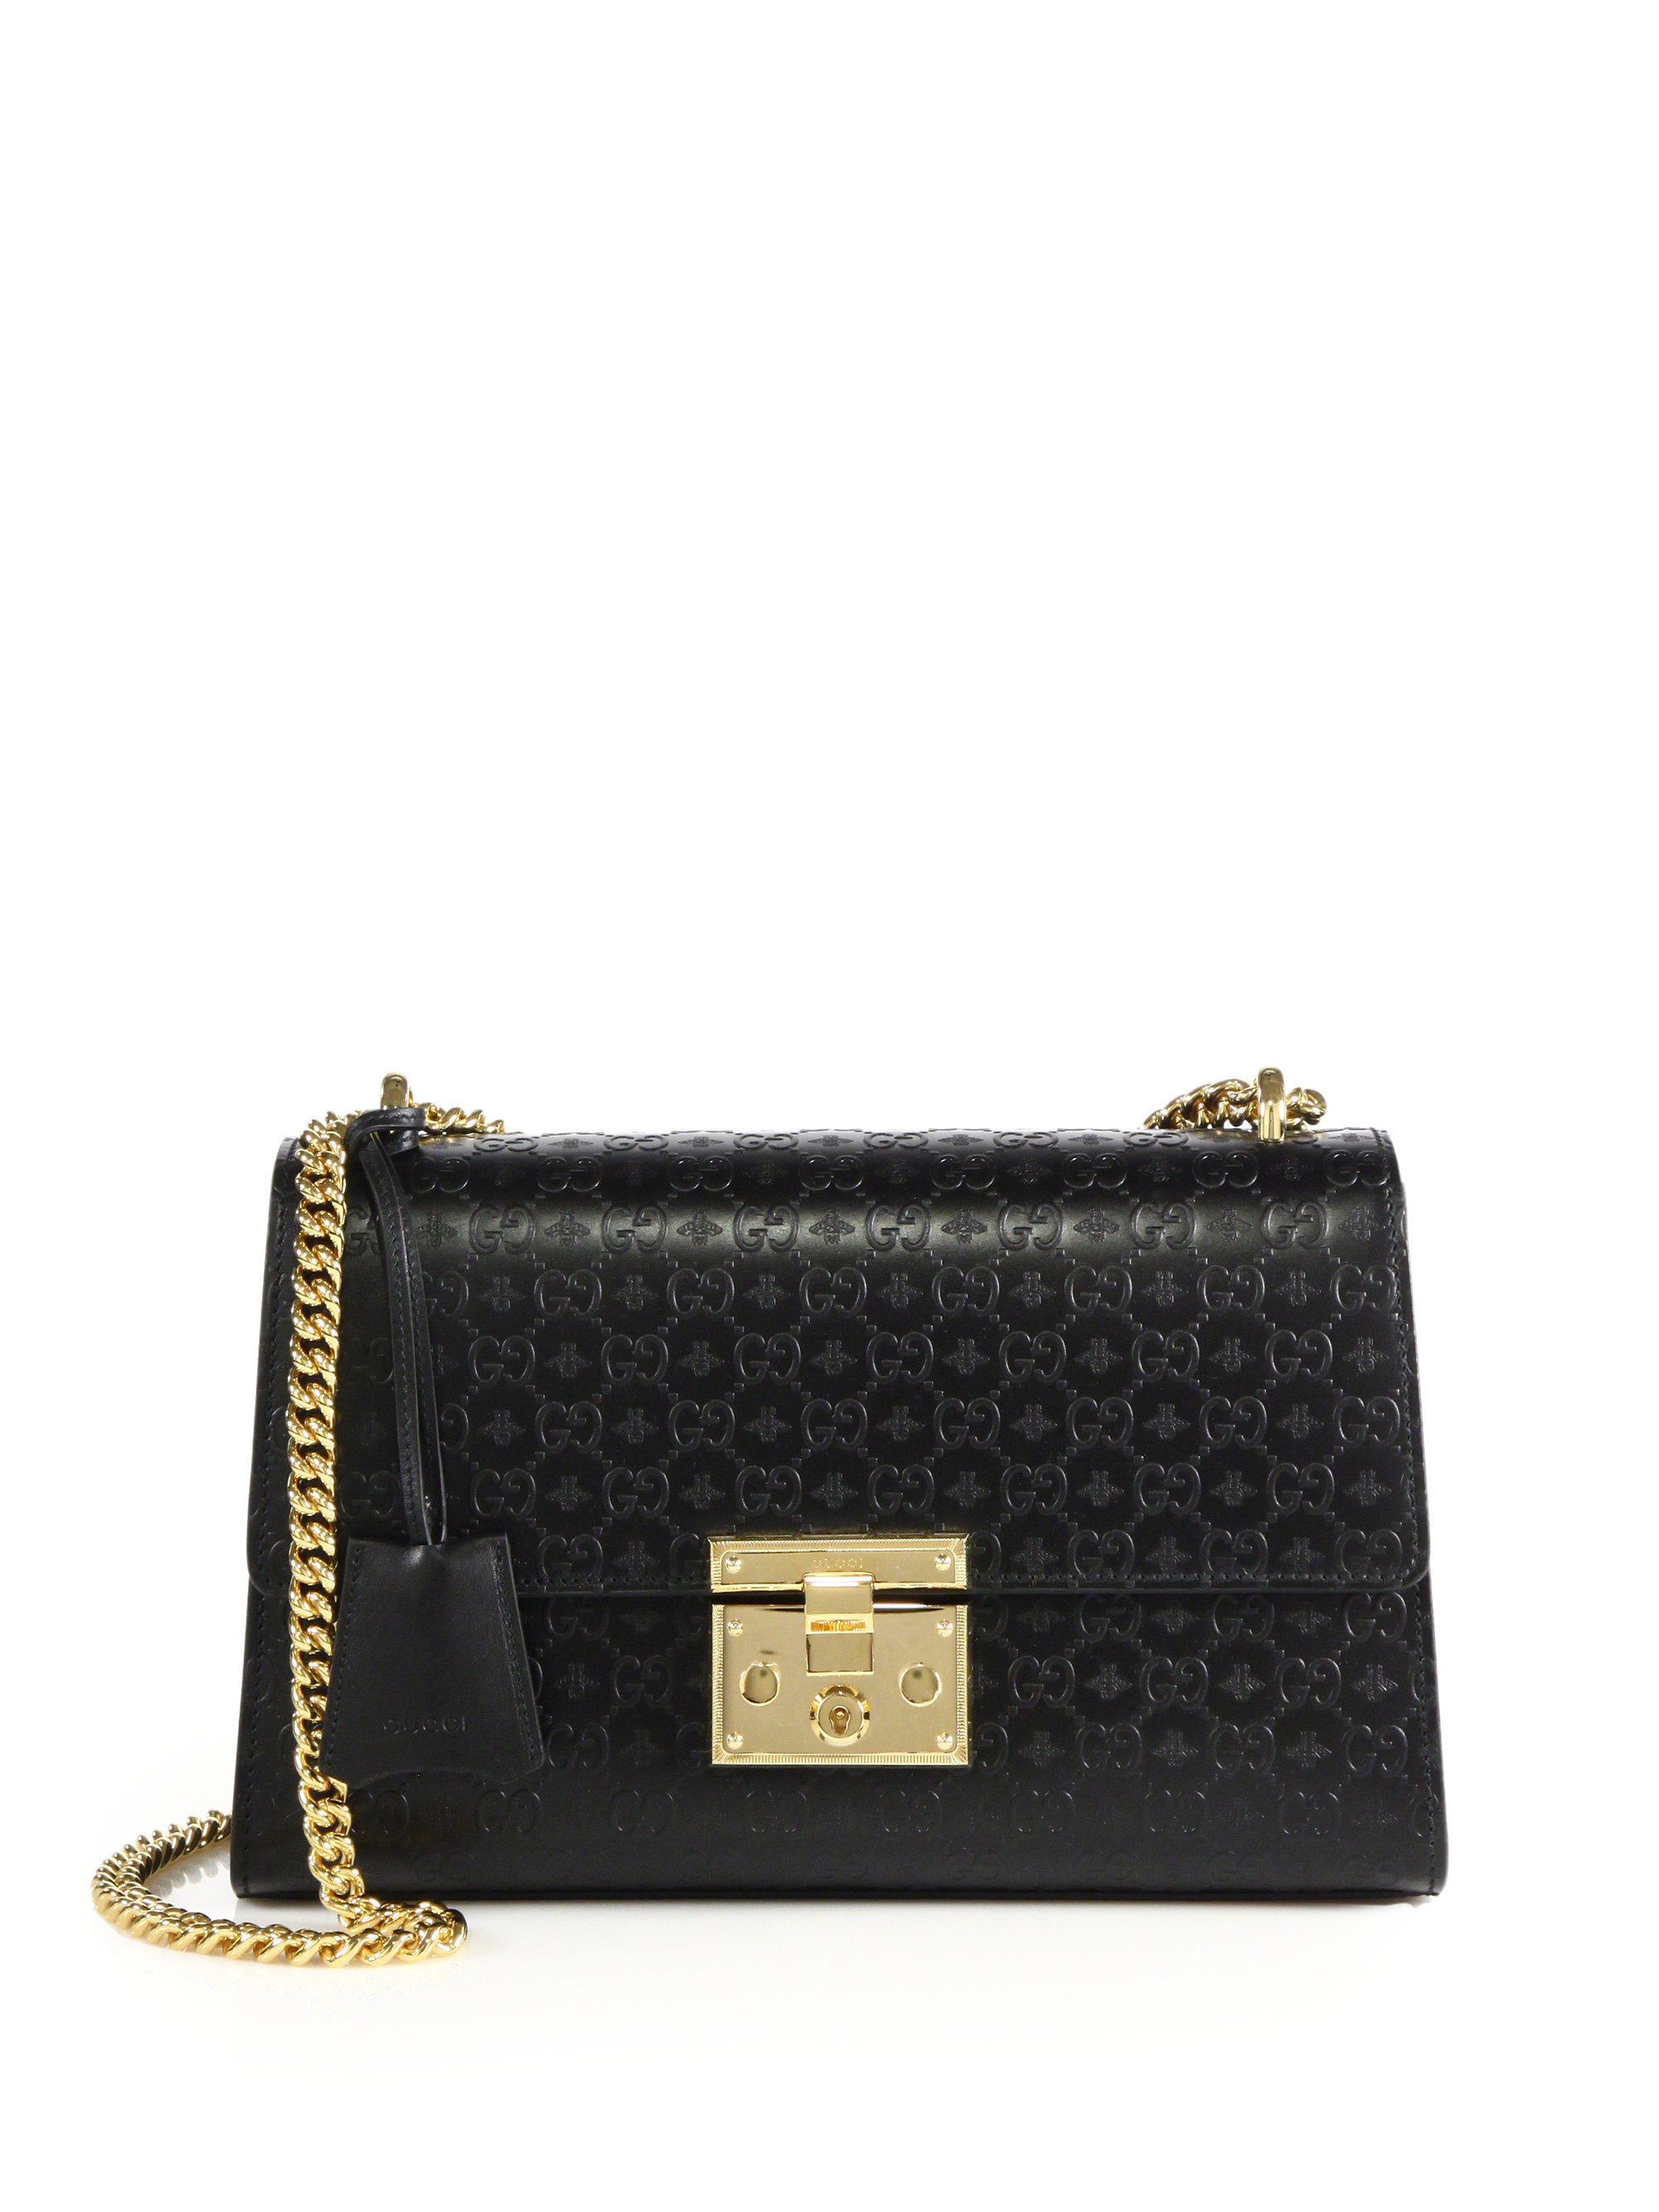 Gucci Padlock Gg Medium Leather Shoulder Bag in Black | Lyst